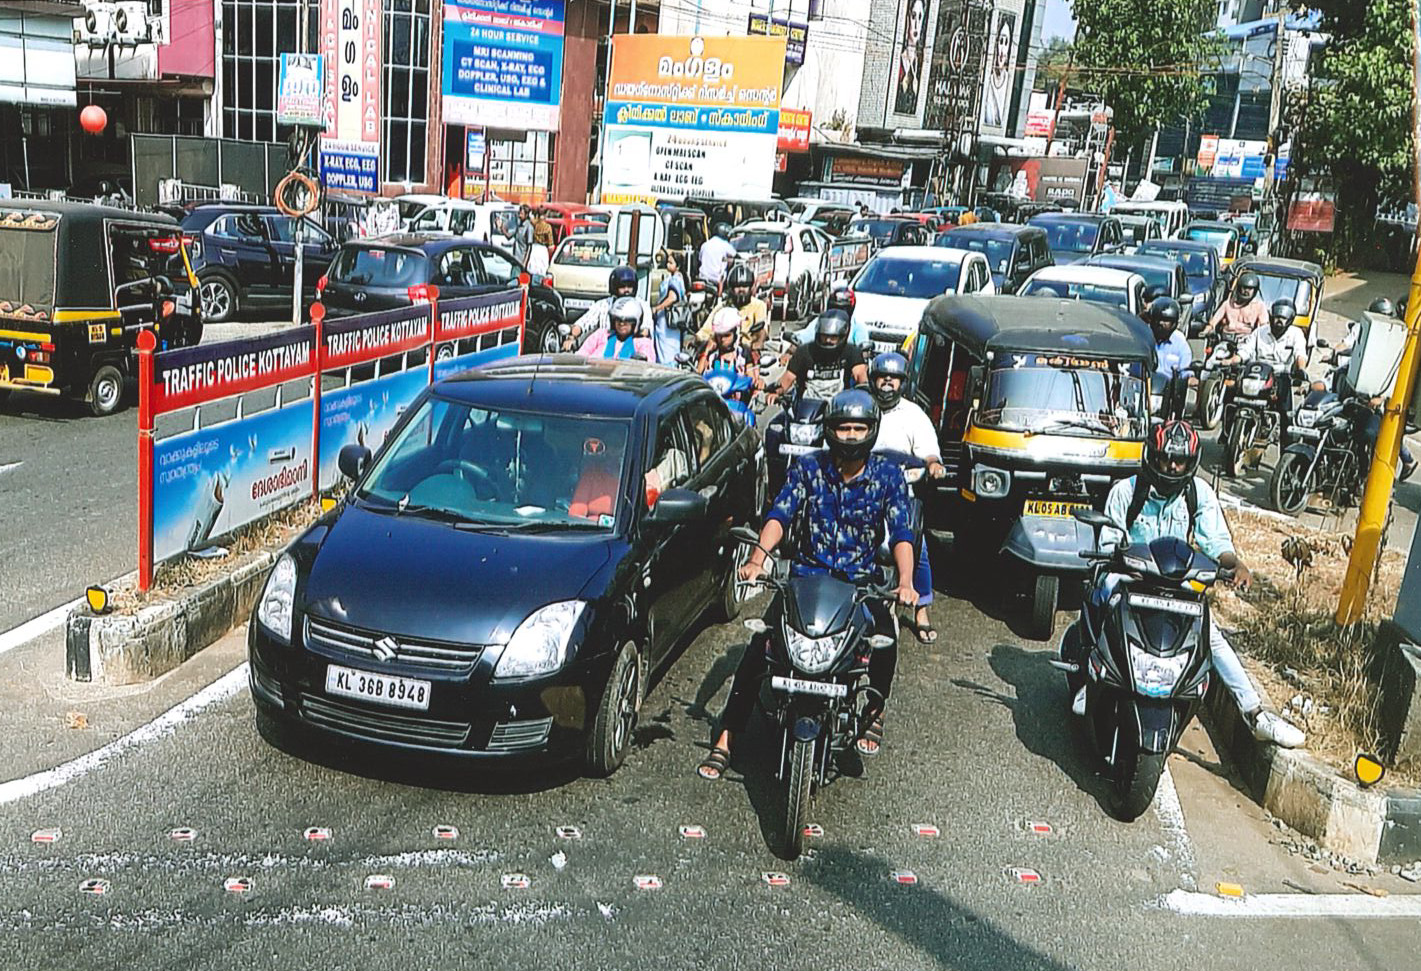 A typical two-lane road in India with cars and trucks that form two lanes, and motorcycles and scooters that fill in every available space in between, alongside, in front of and behind the rest of the traffic.